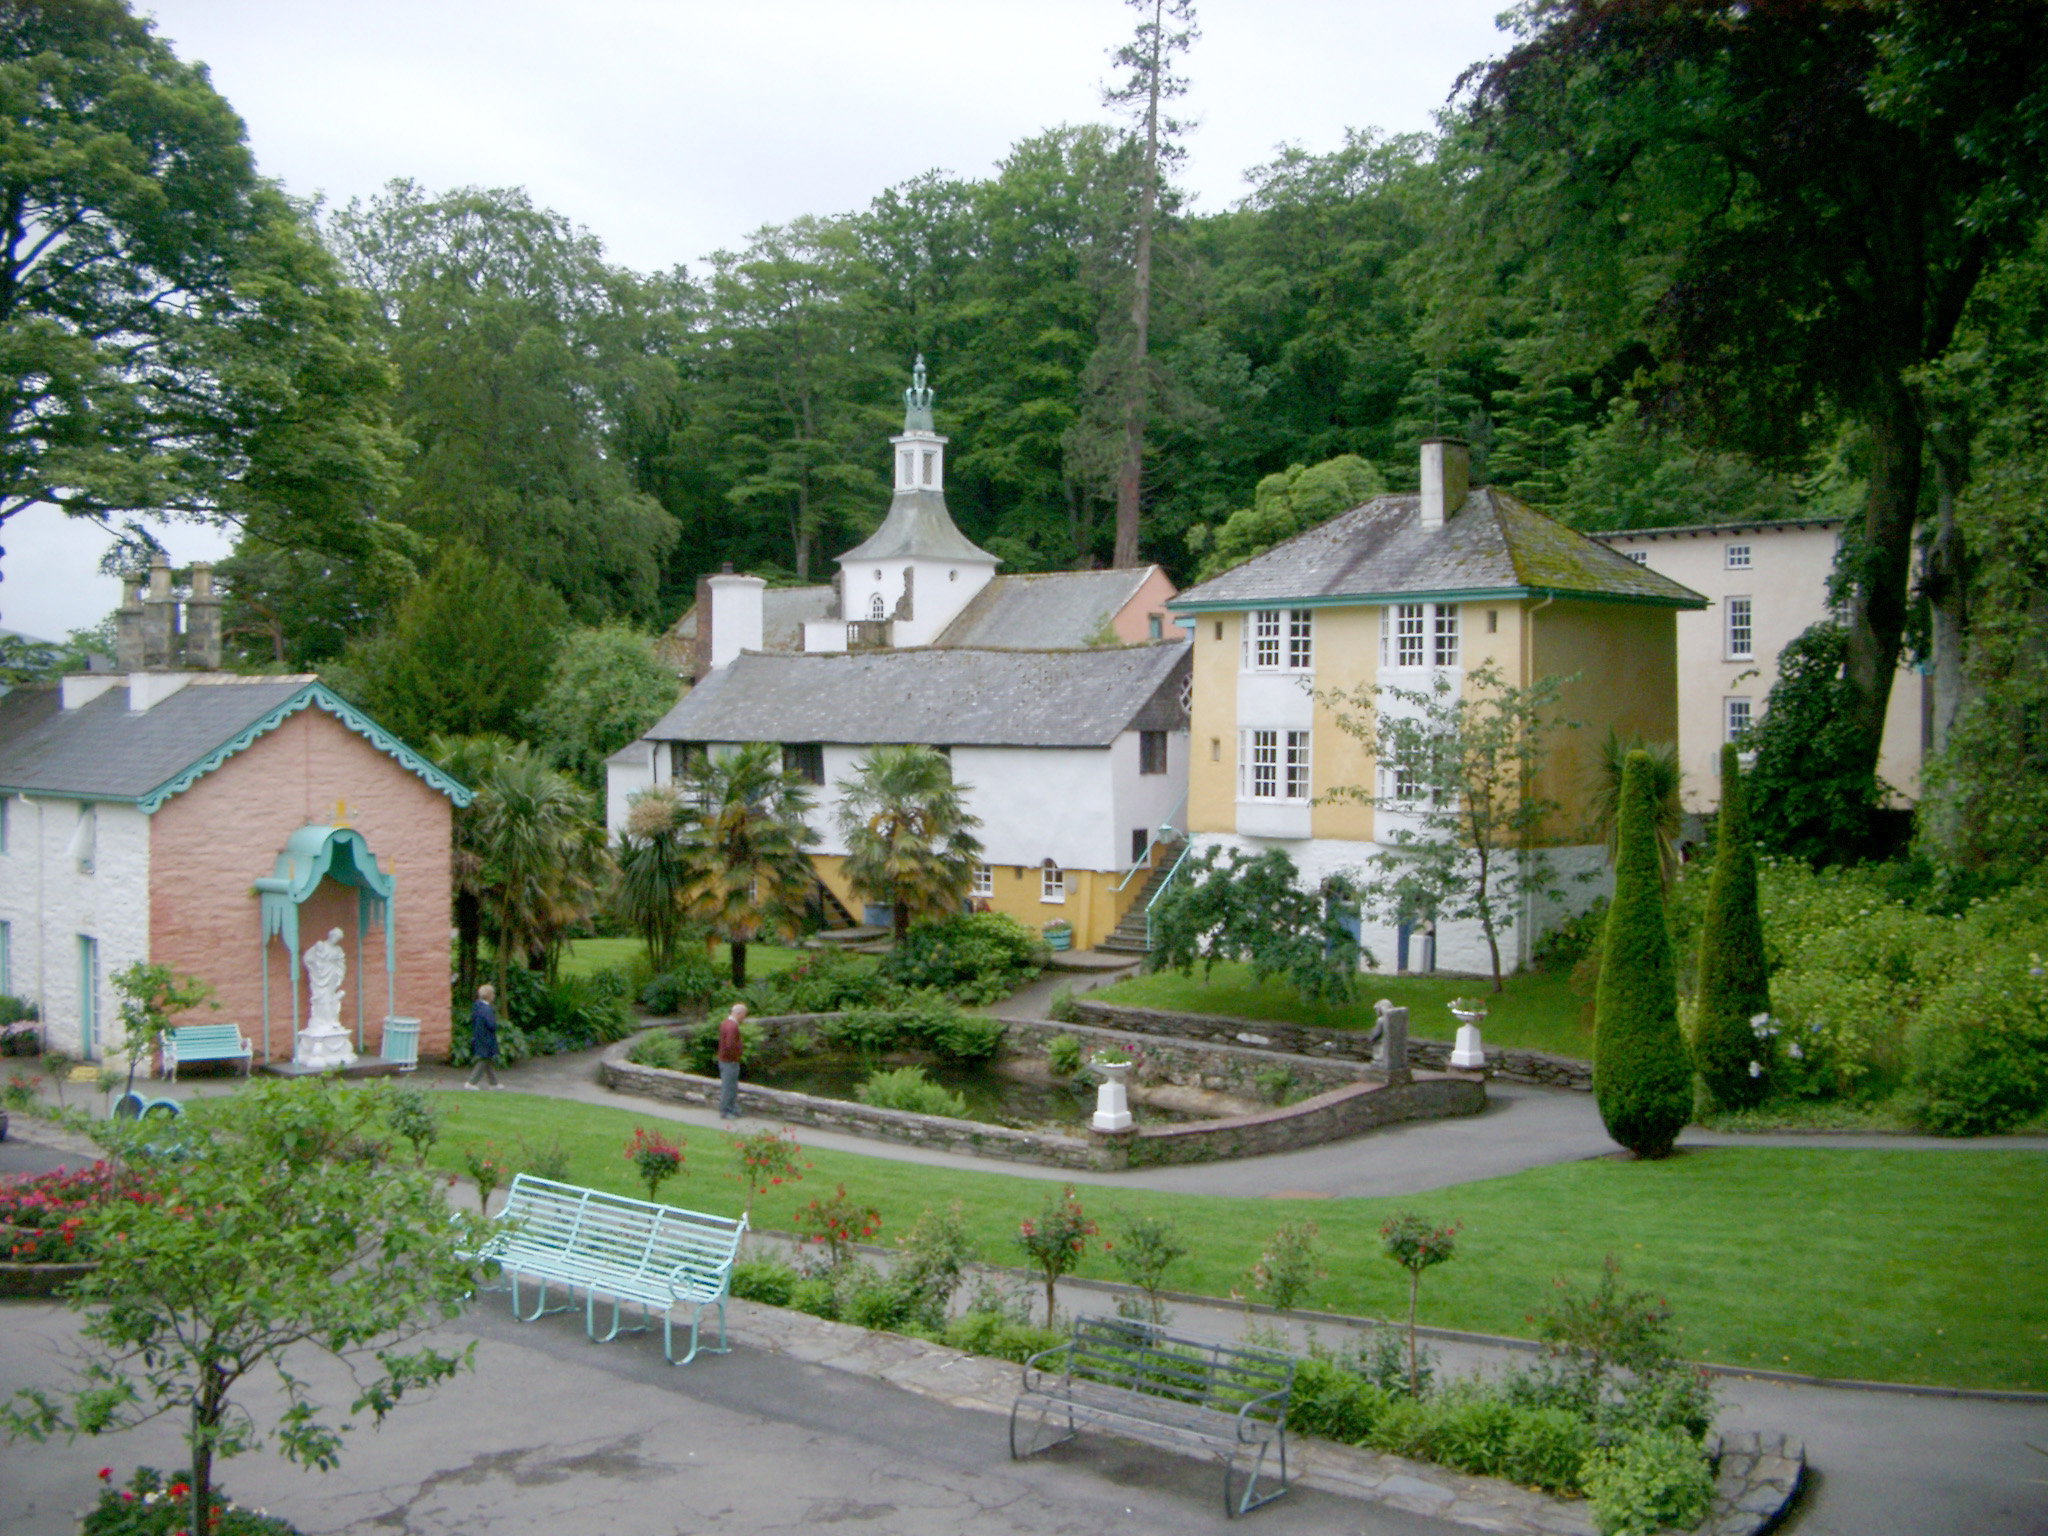 Quaint Buildings and Pond with Green Space in Portmeirion, a Popular Tourist Village in Gwynedd, North Wales